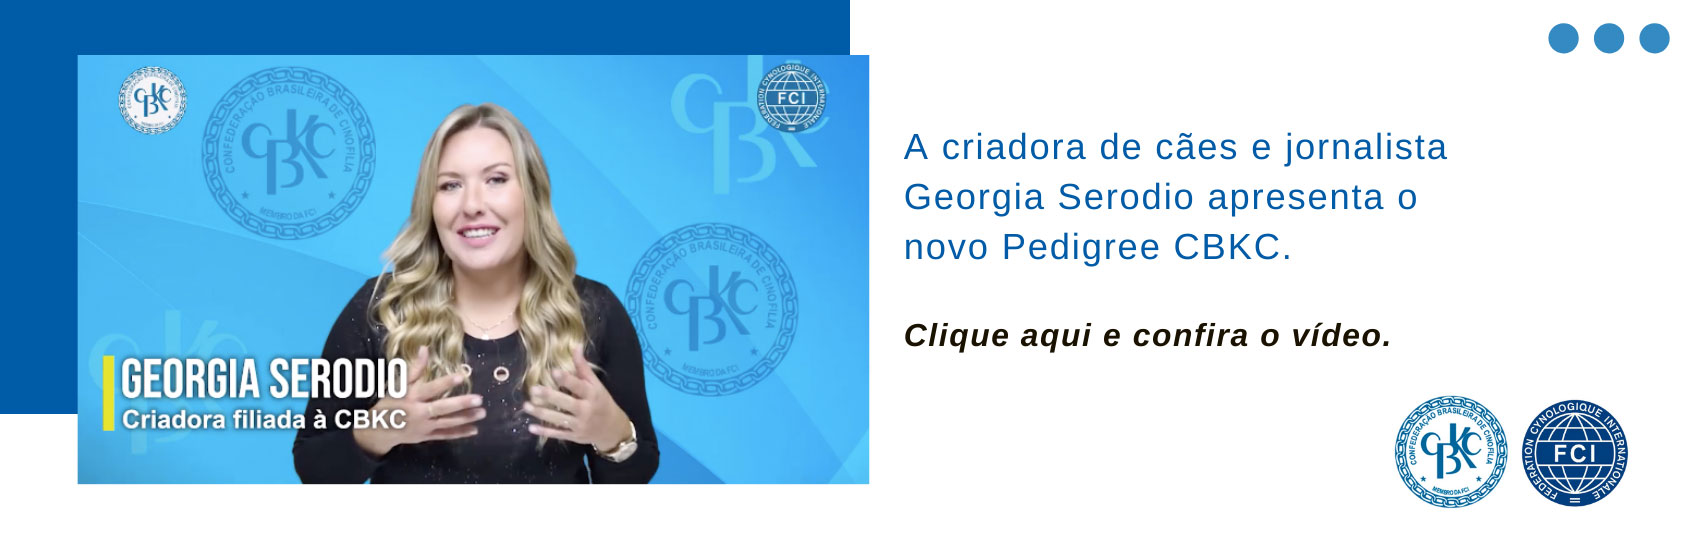 CBKC - Video sobre Pedigree CBKC.